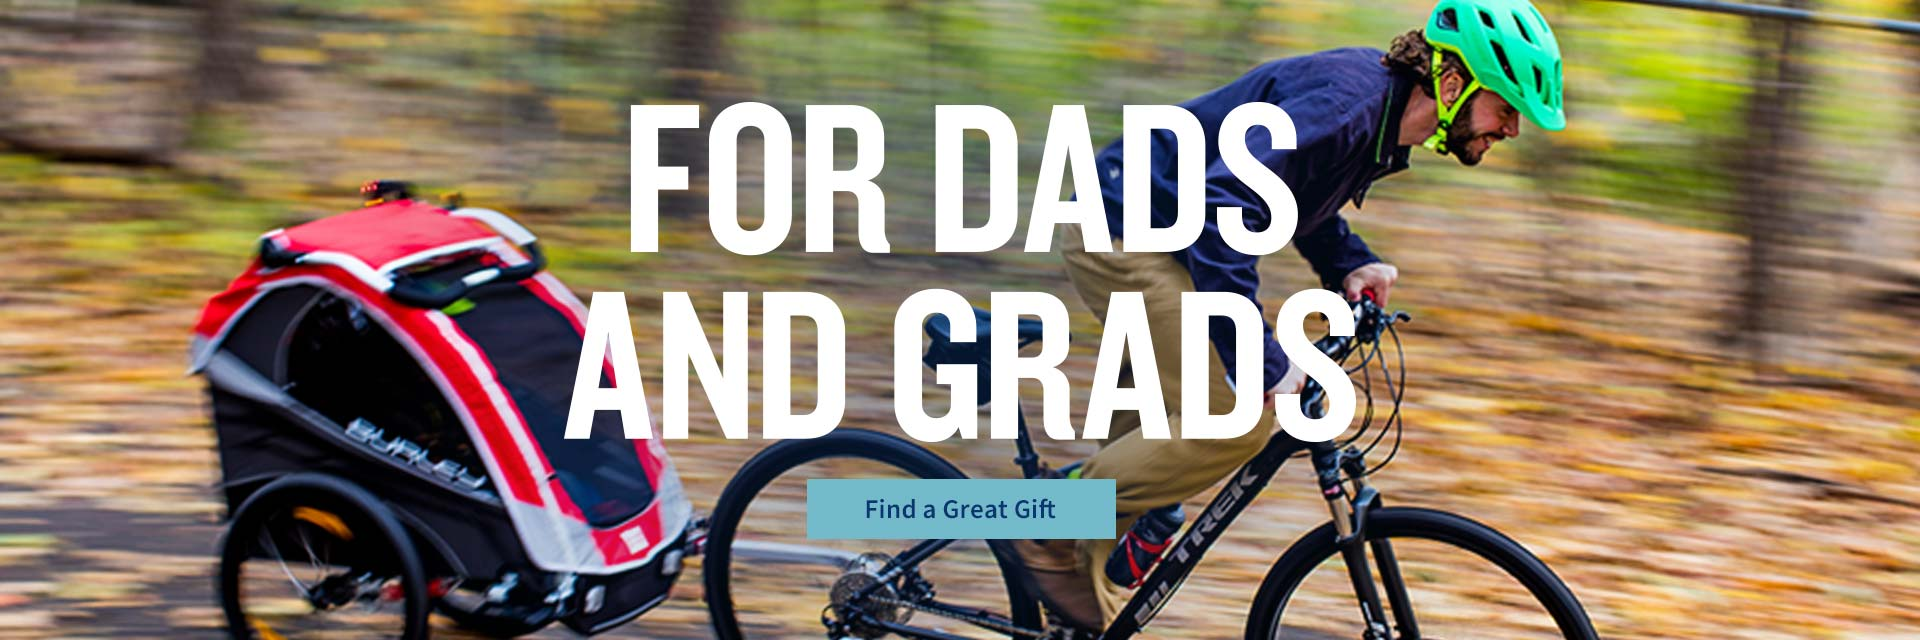 For Dads and Grads